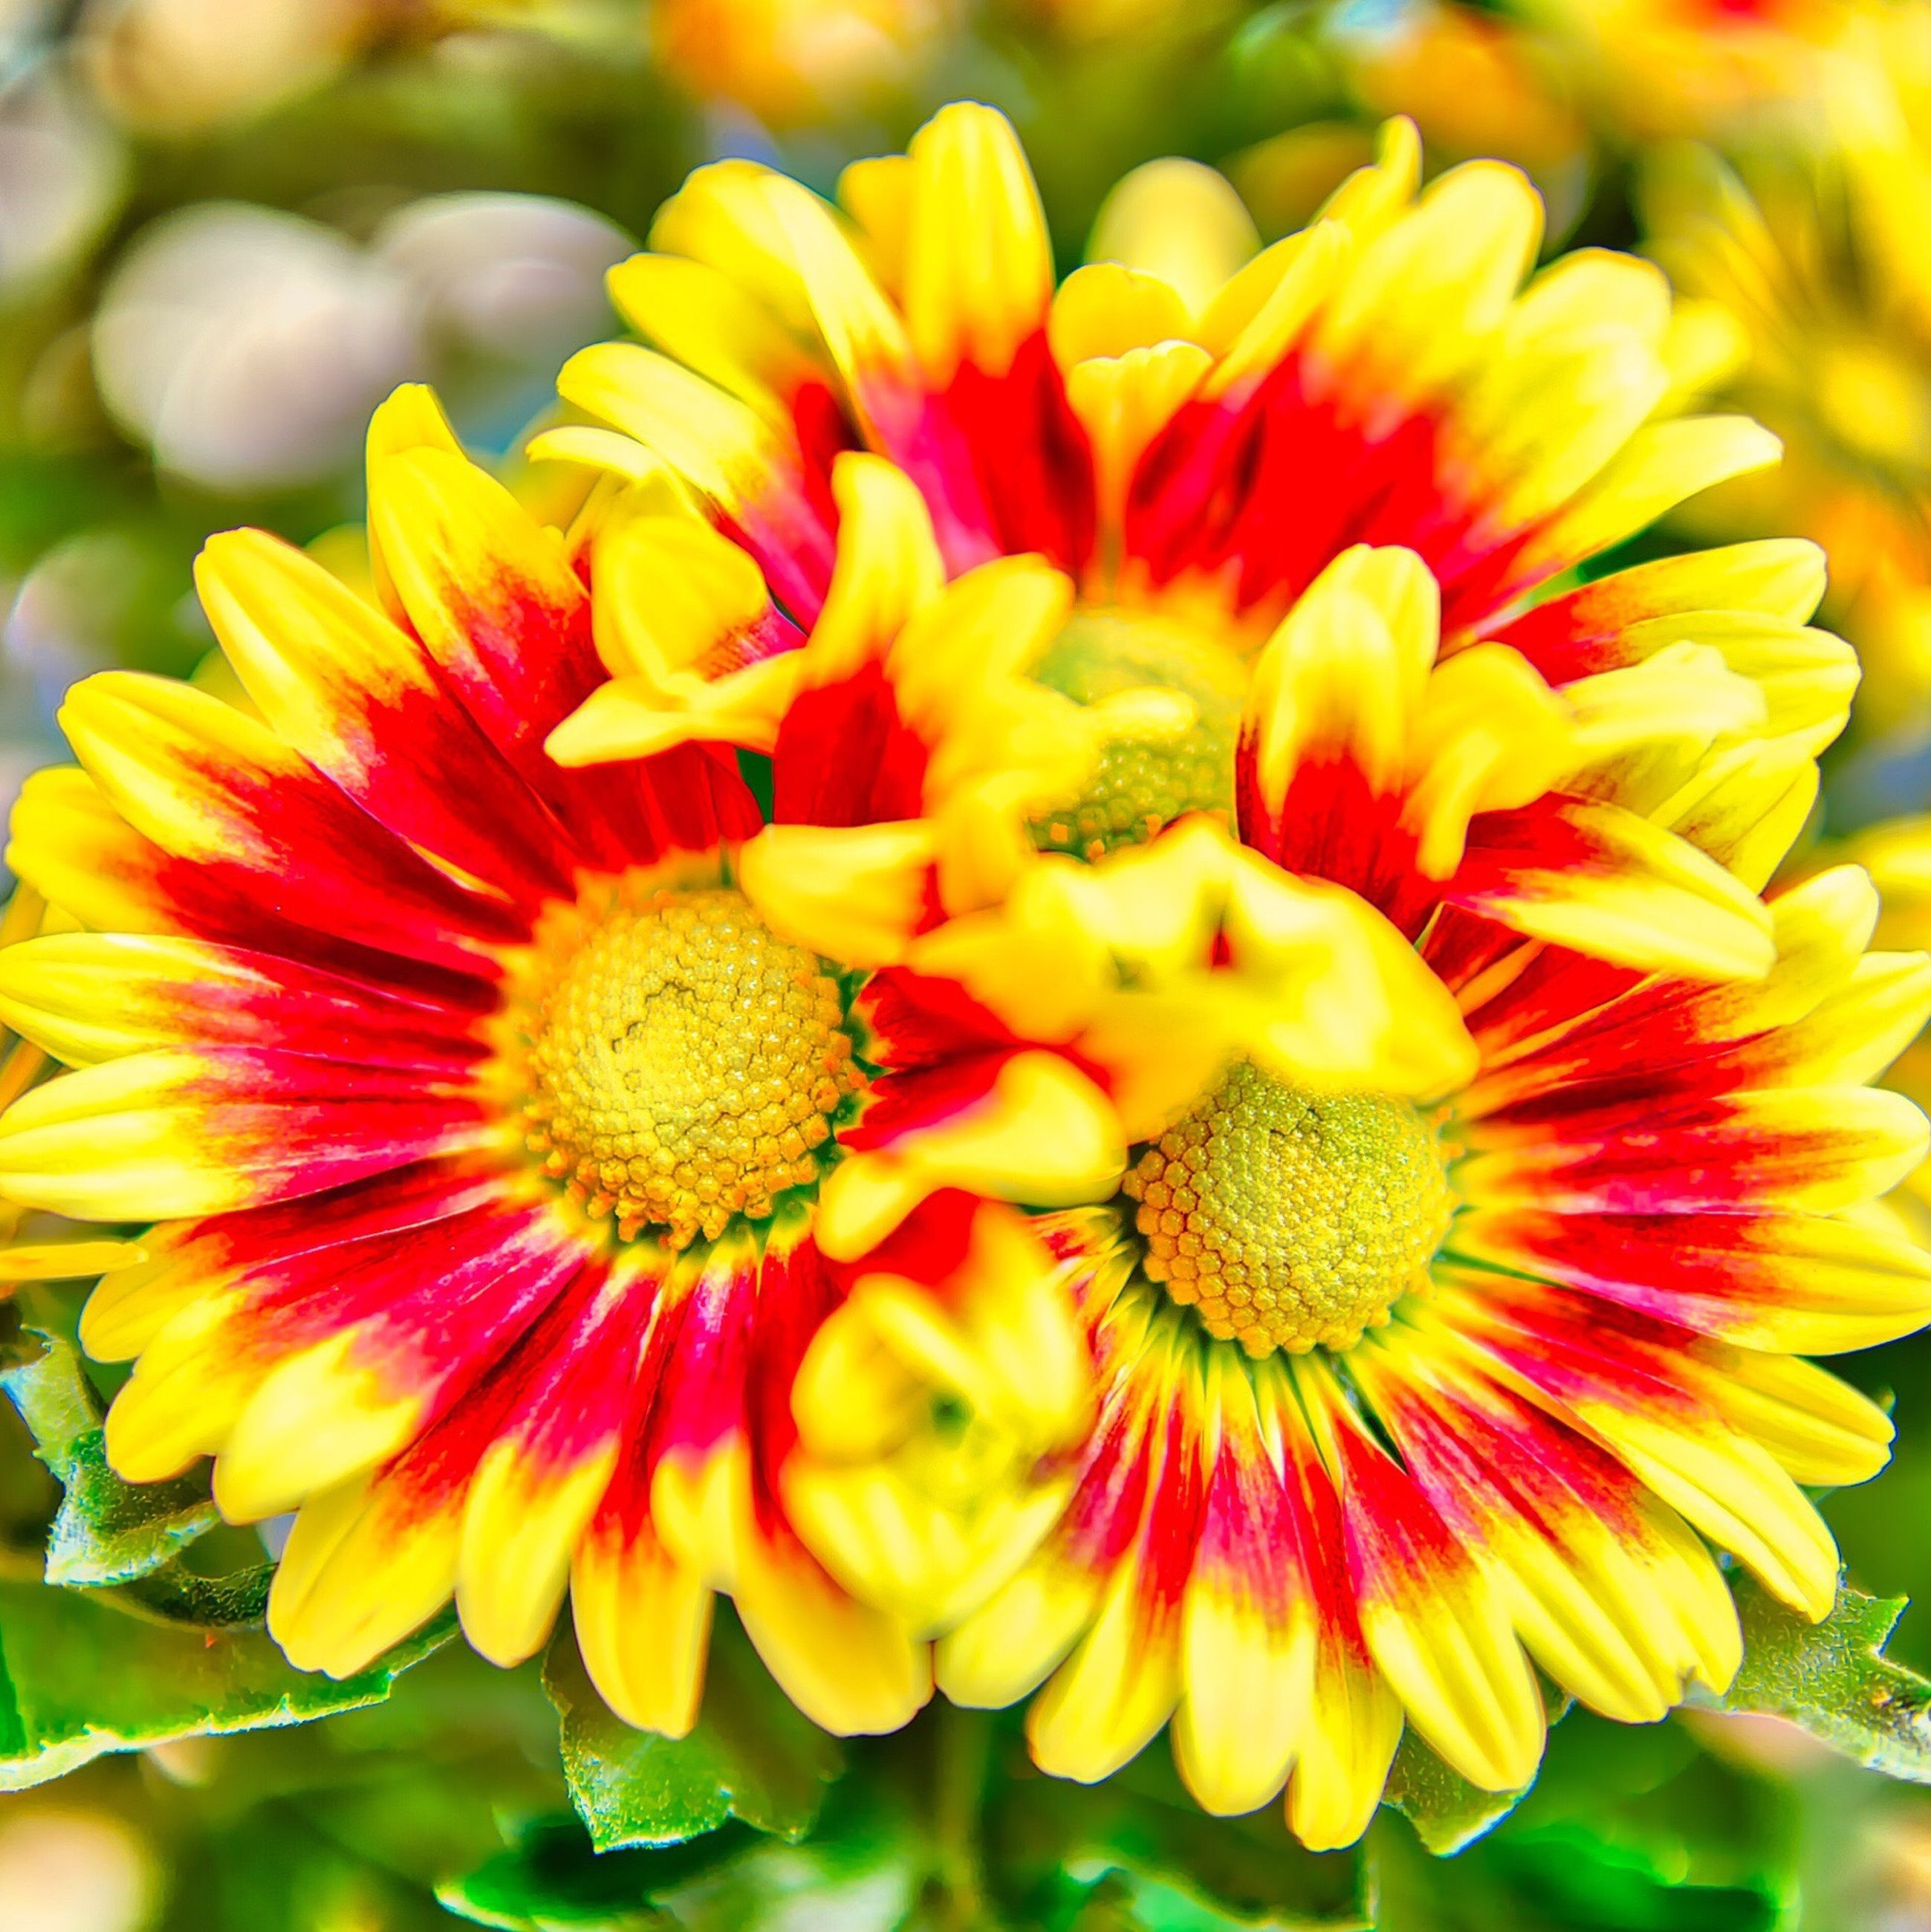 flower, fragility, petal, beauty in nature, freshness, nature, flower head, pollen, yellow, growth, close-up, outdoors, plant, no people, blooming, day, zinnia